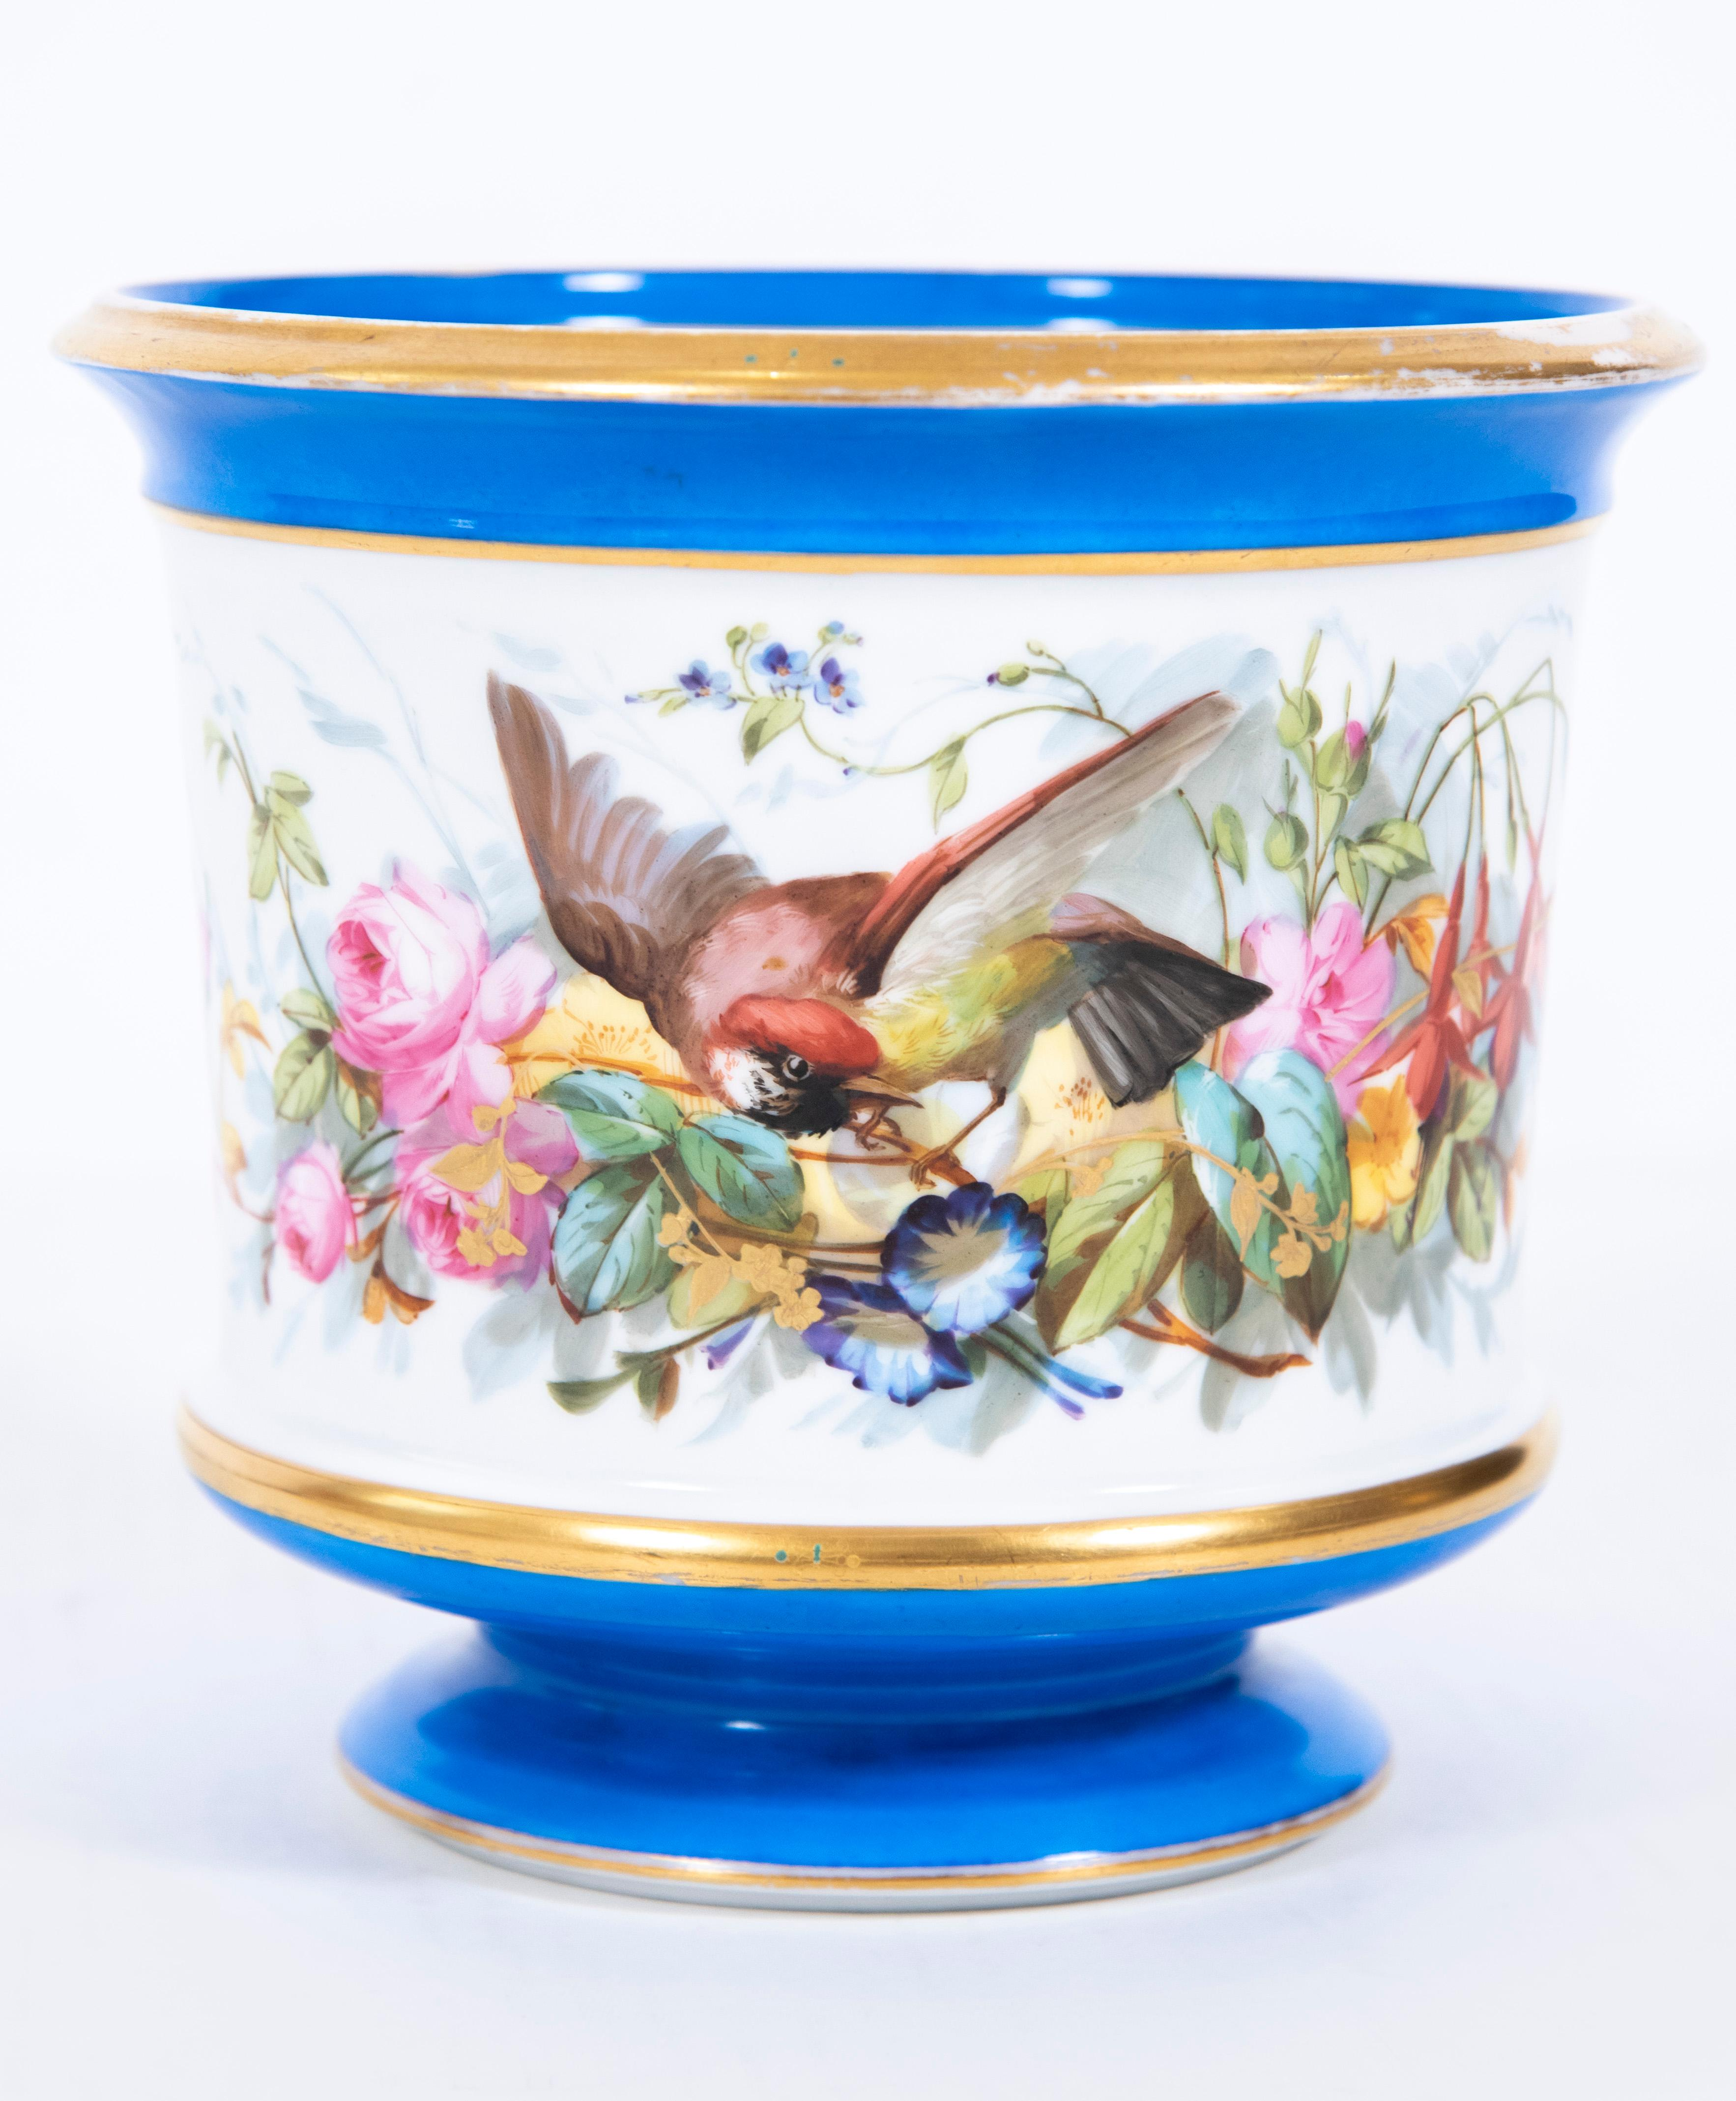 French Old Paris Porcelain Jardiniere Height: 7 3/4 inches; Diameter: 8 1/4 inches